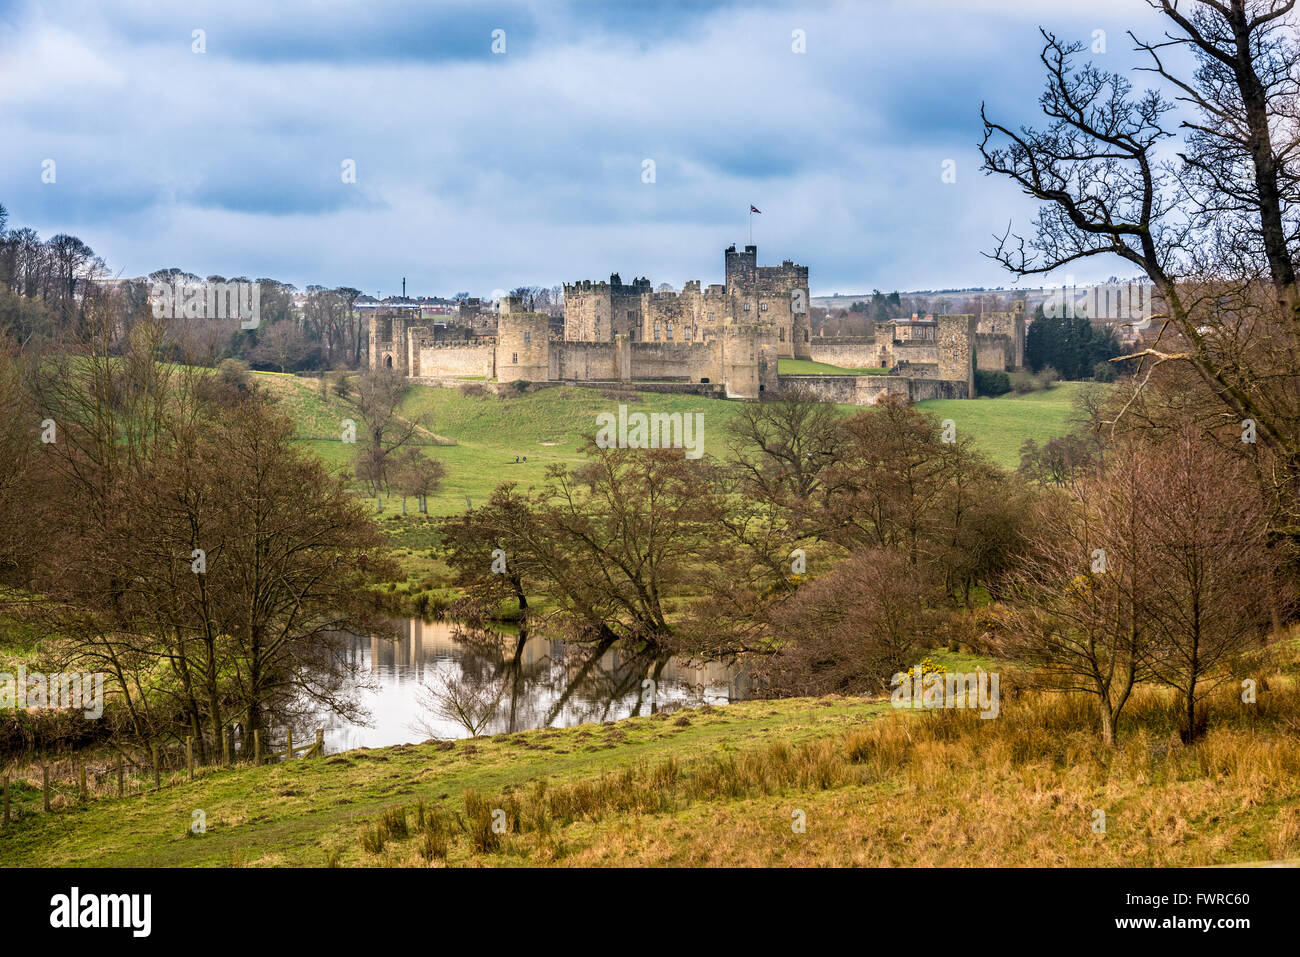 Alnwick Castle Northumberland. North East England. Seen in the Harry Potter films. - Stock Image